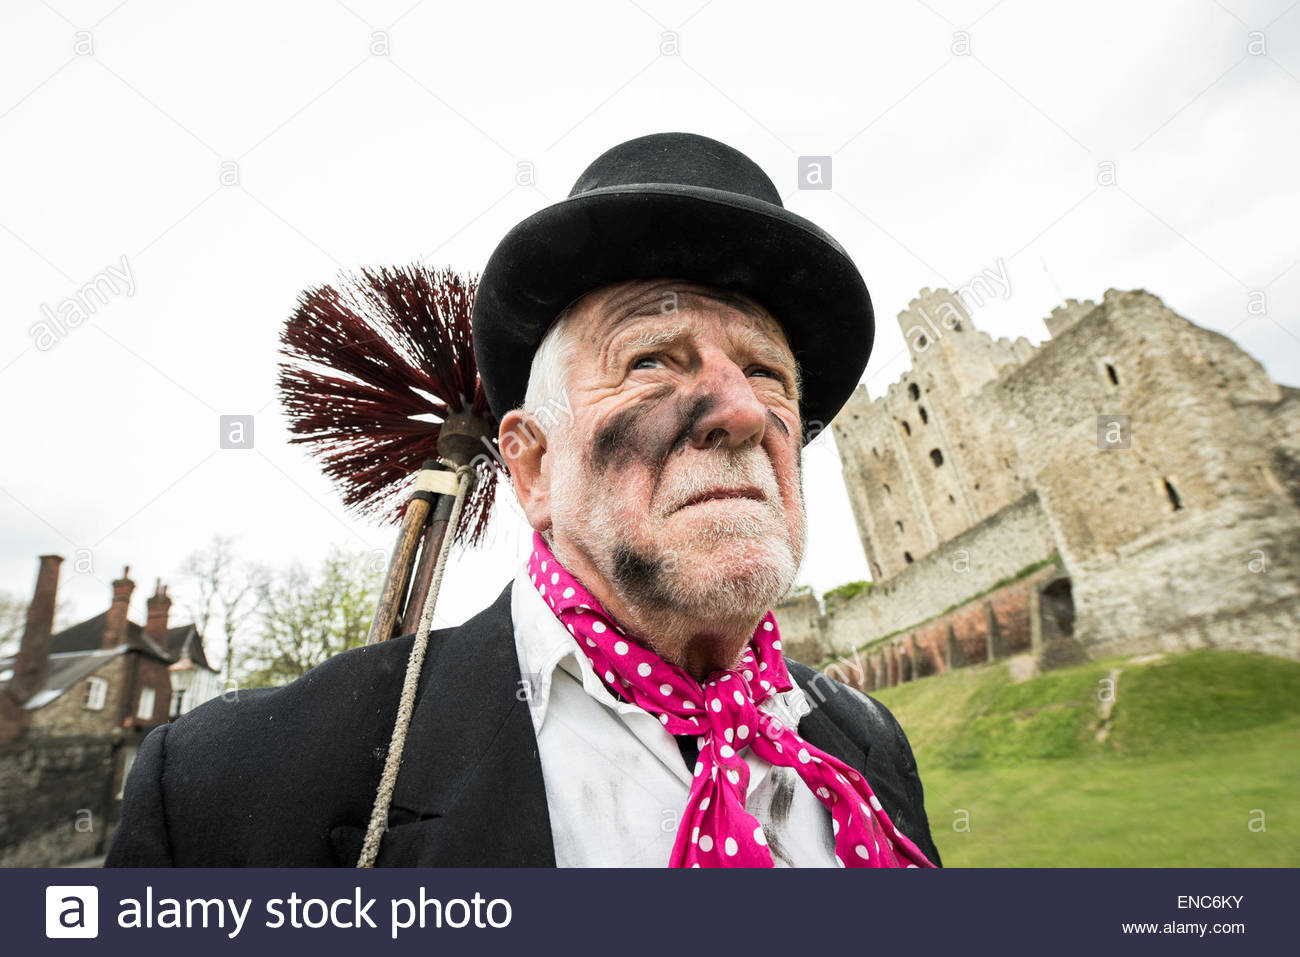 Chimney Sweep Victorian Stock Photos Chimney Sweep Victorian Stock